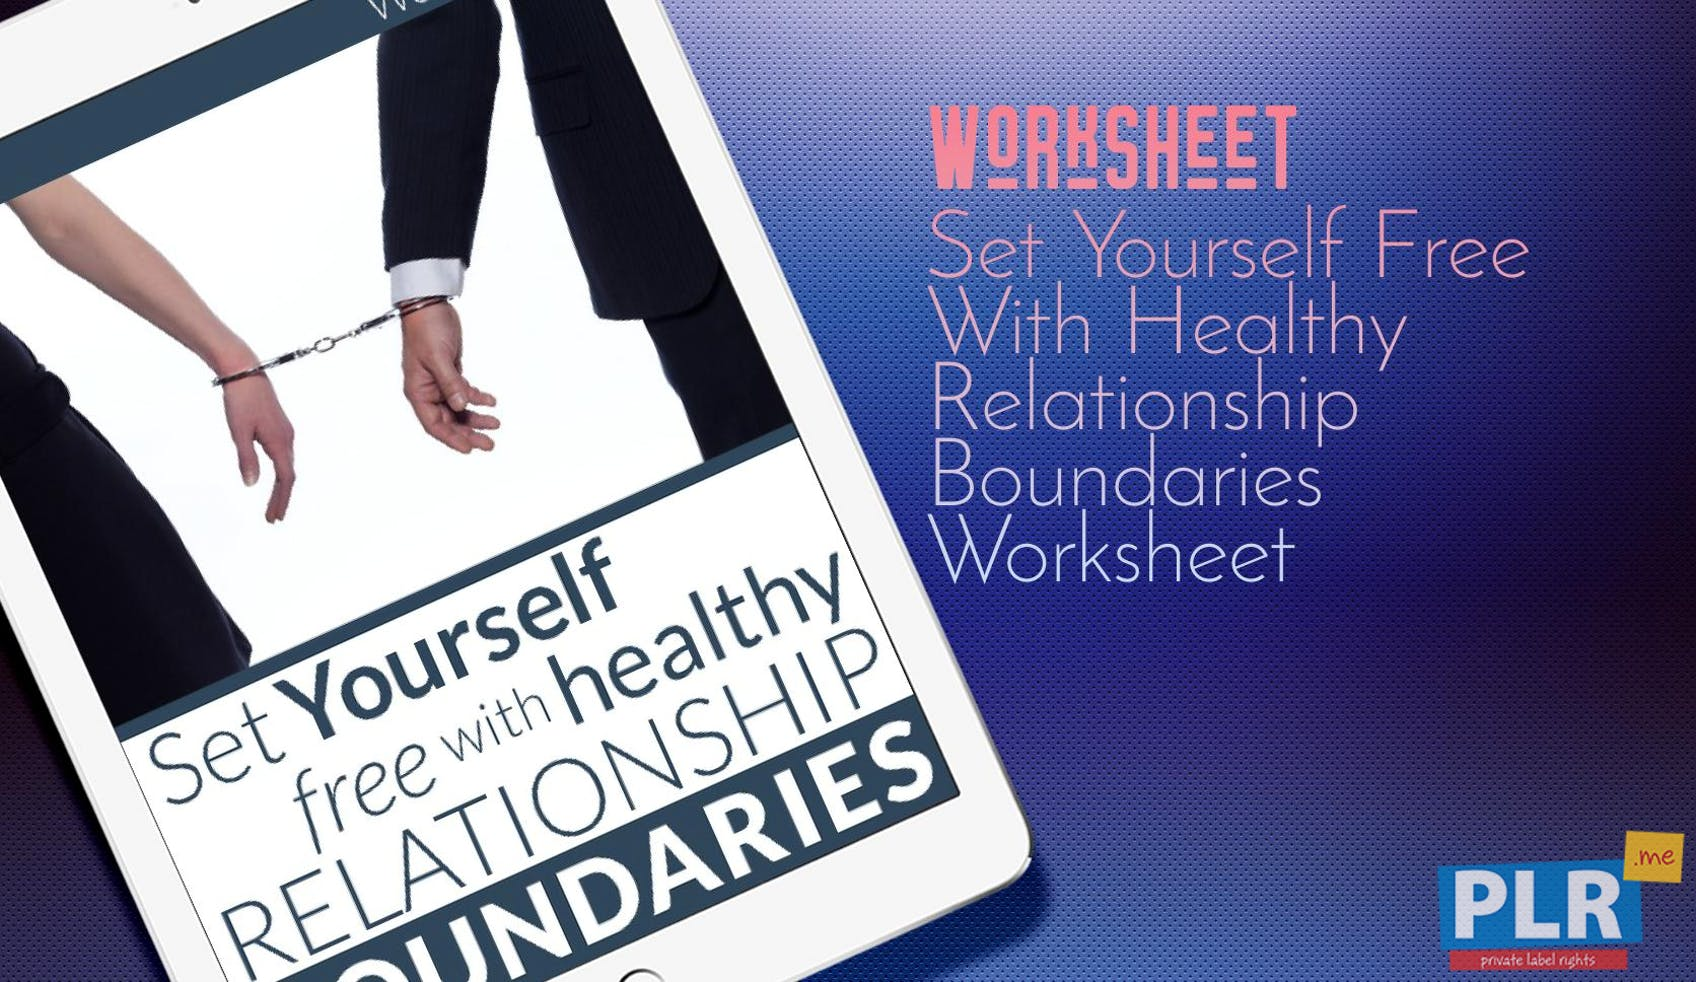 PLR Worksheets - Set Yourself Free With Healthy Relationship ...